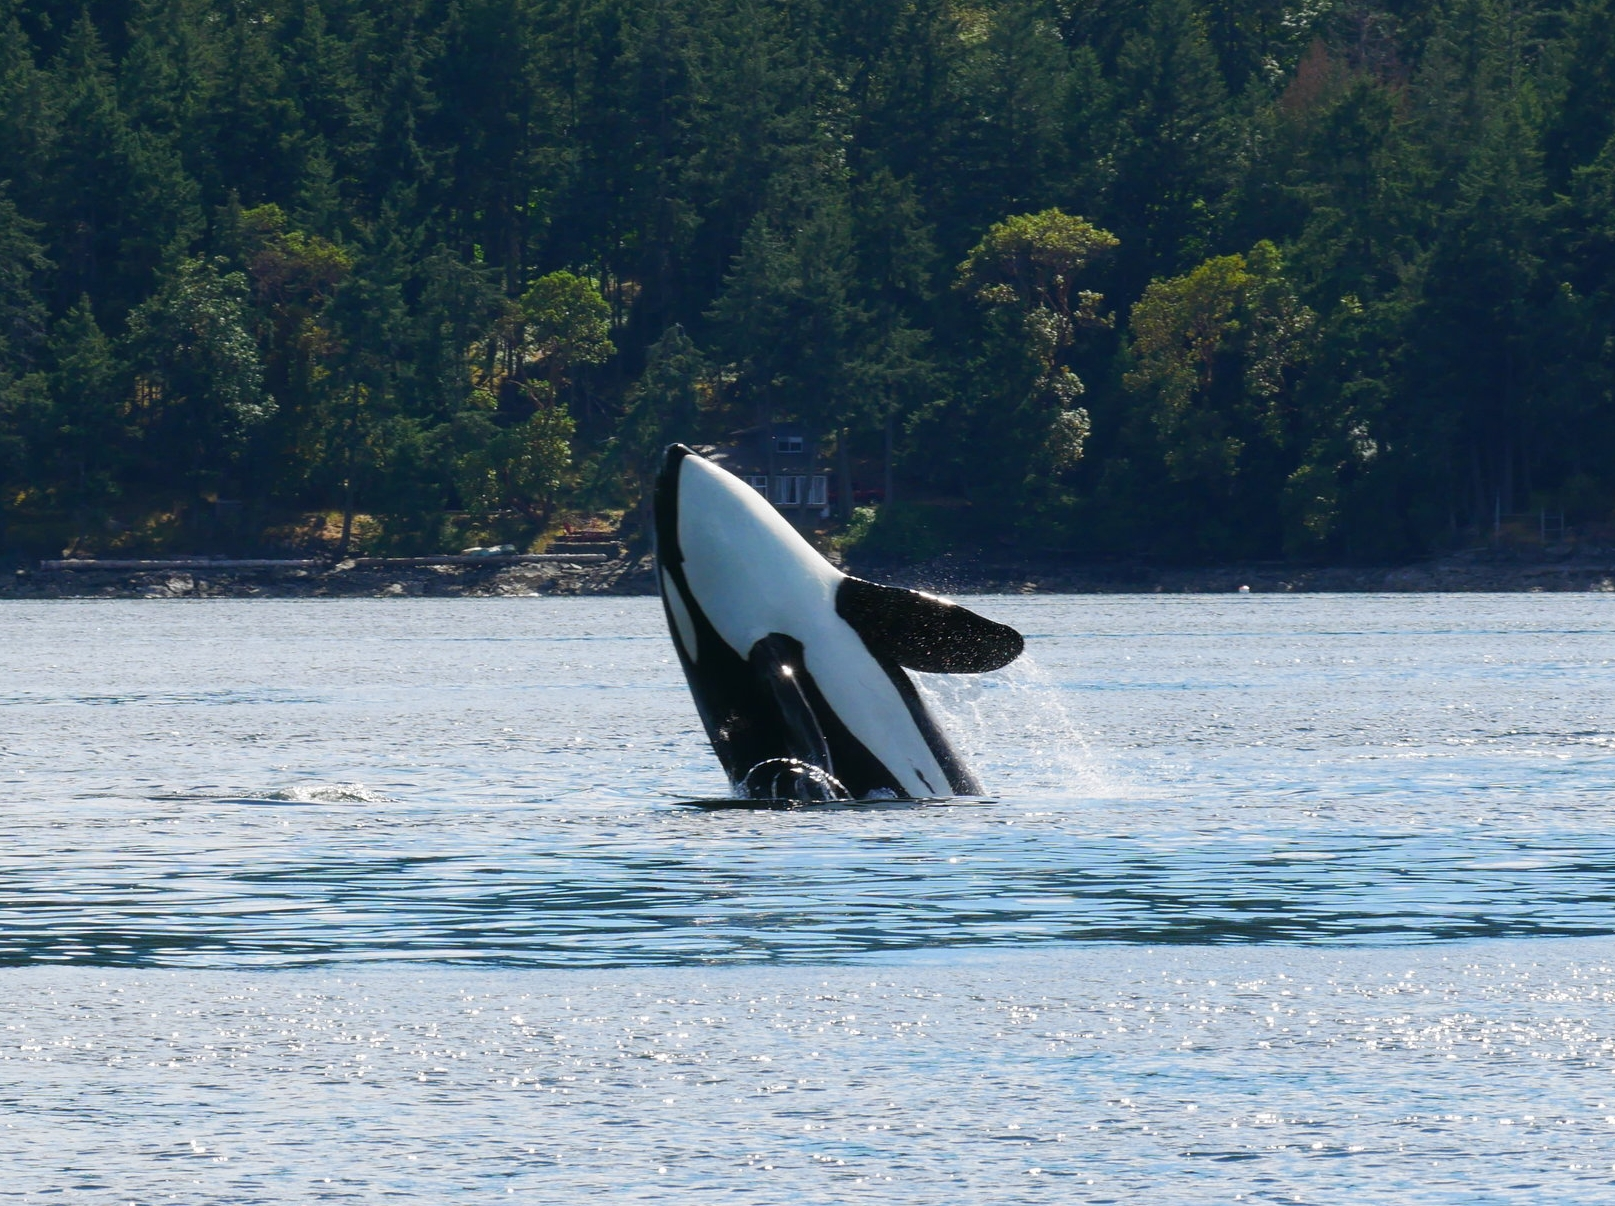 Breach! A breach is when a orca jumps out of the water and lands on its side. They often occur when the whales are excited like during or after a hunt! Photo by Val Watson